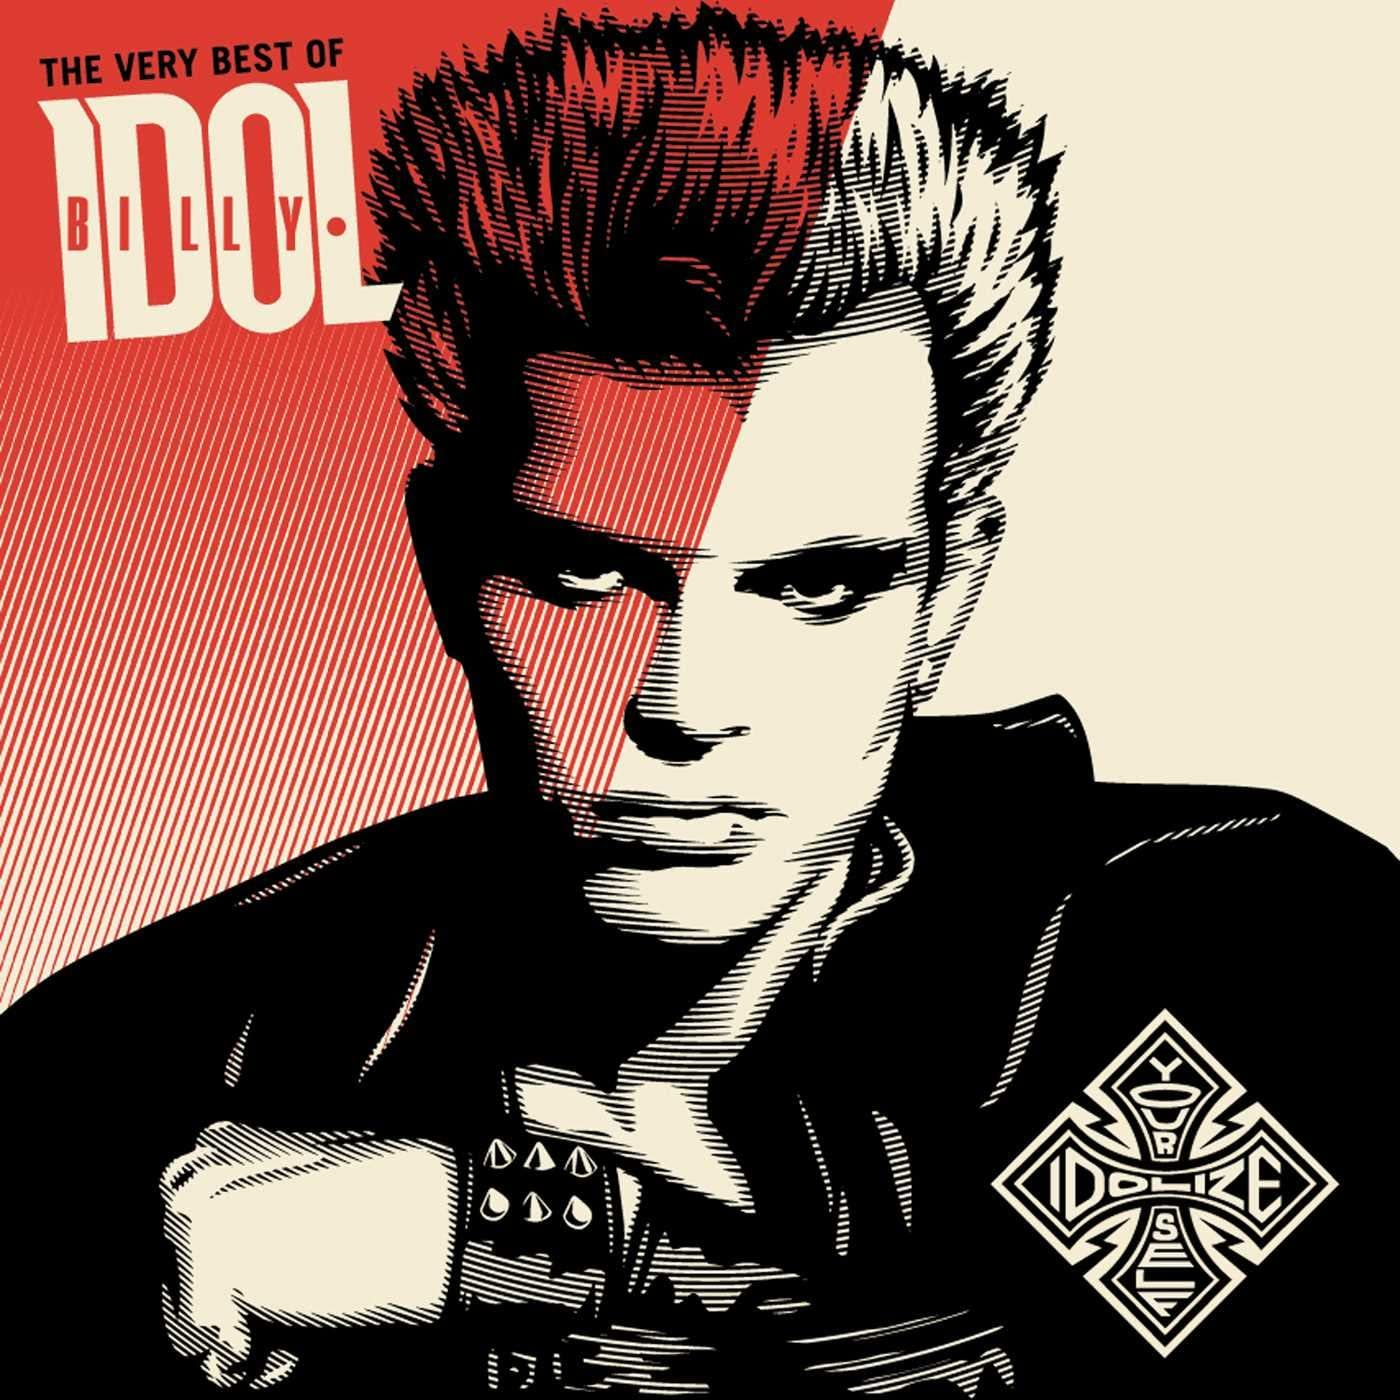 Copertina Vinile 33 giri The Very Best Of [2 LP] di Billy Idol